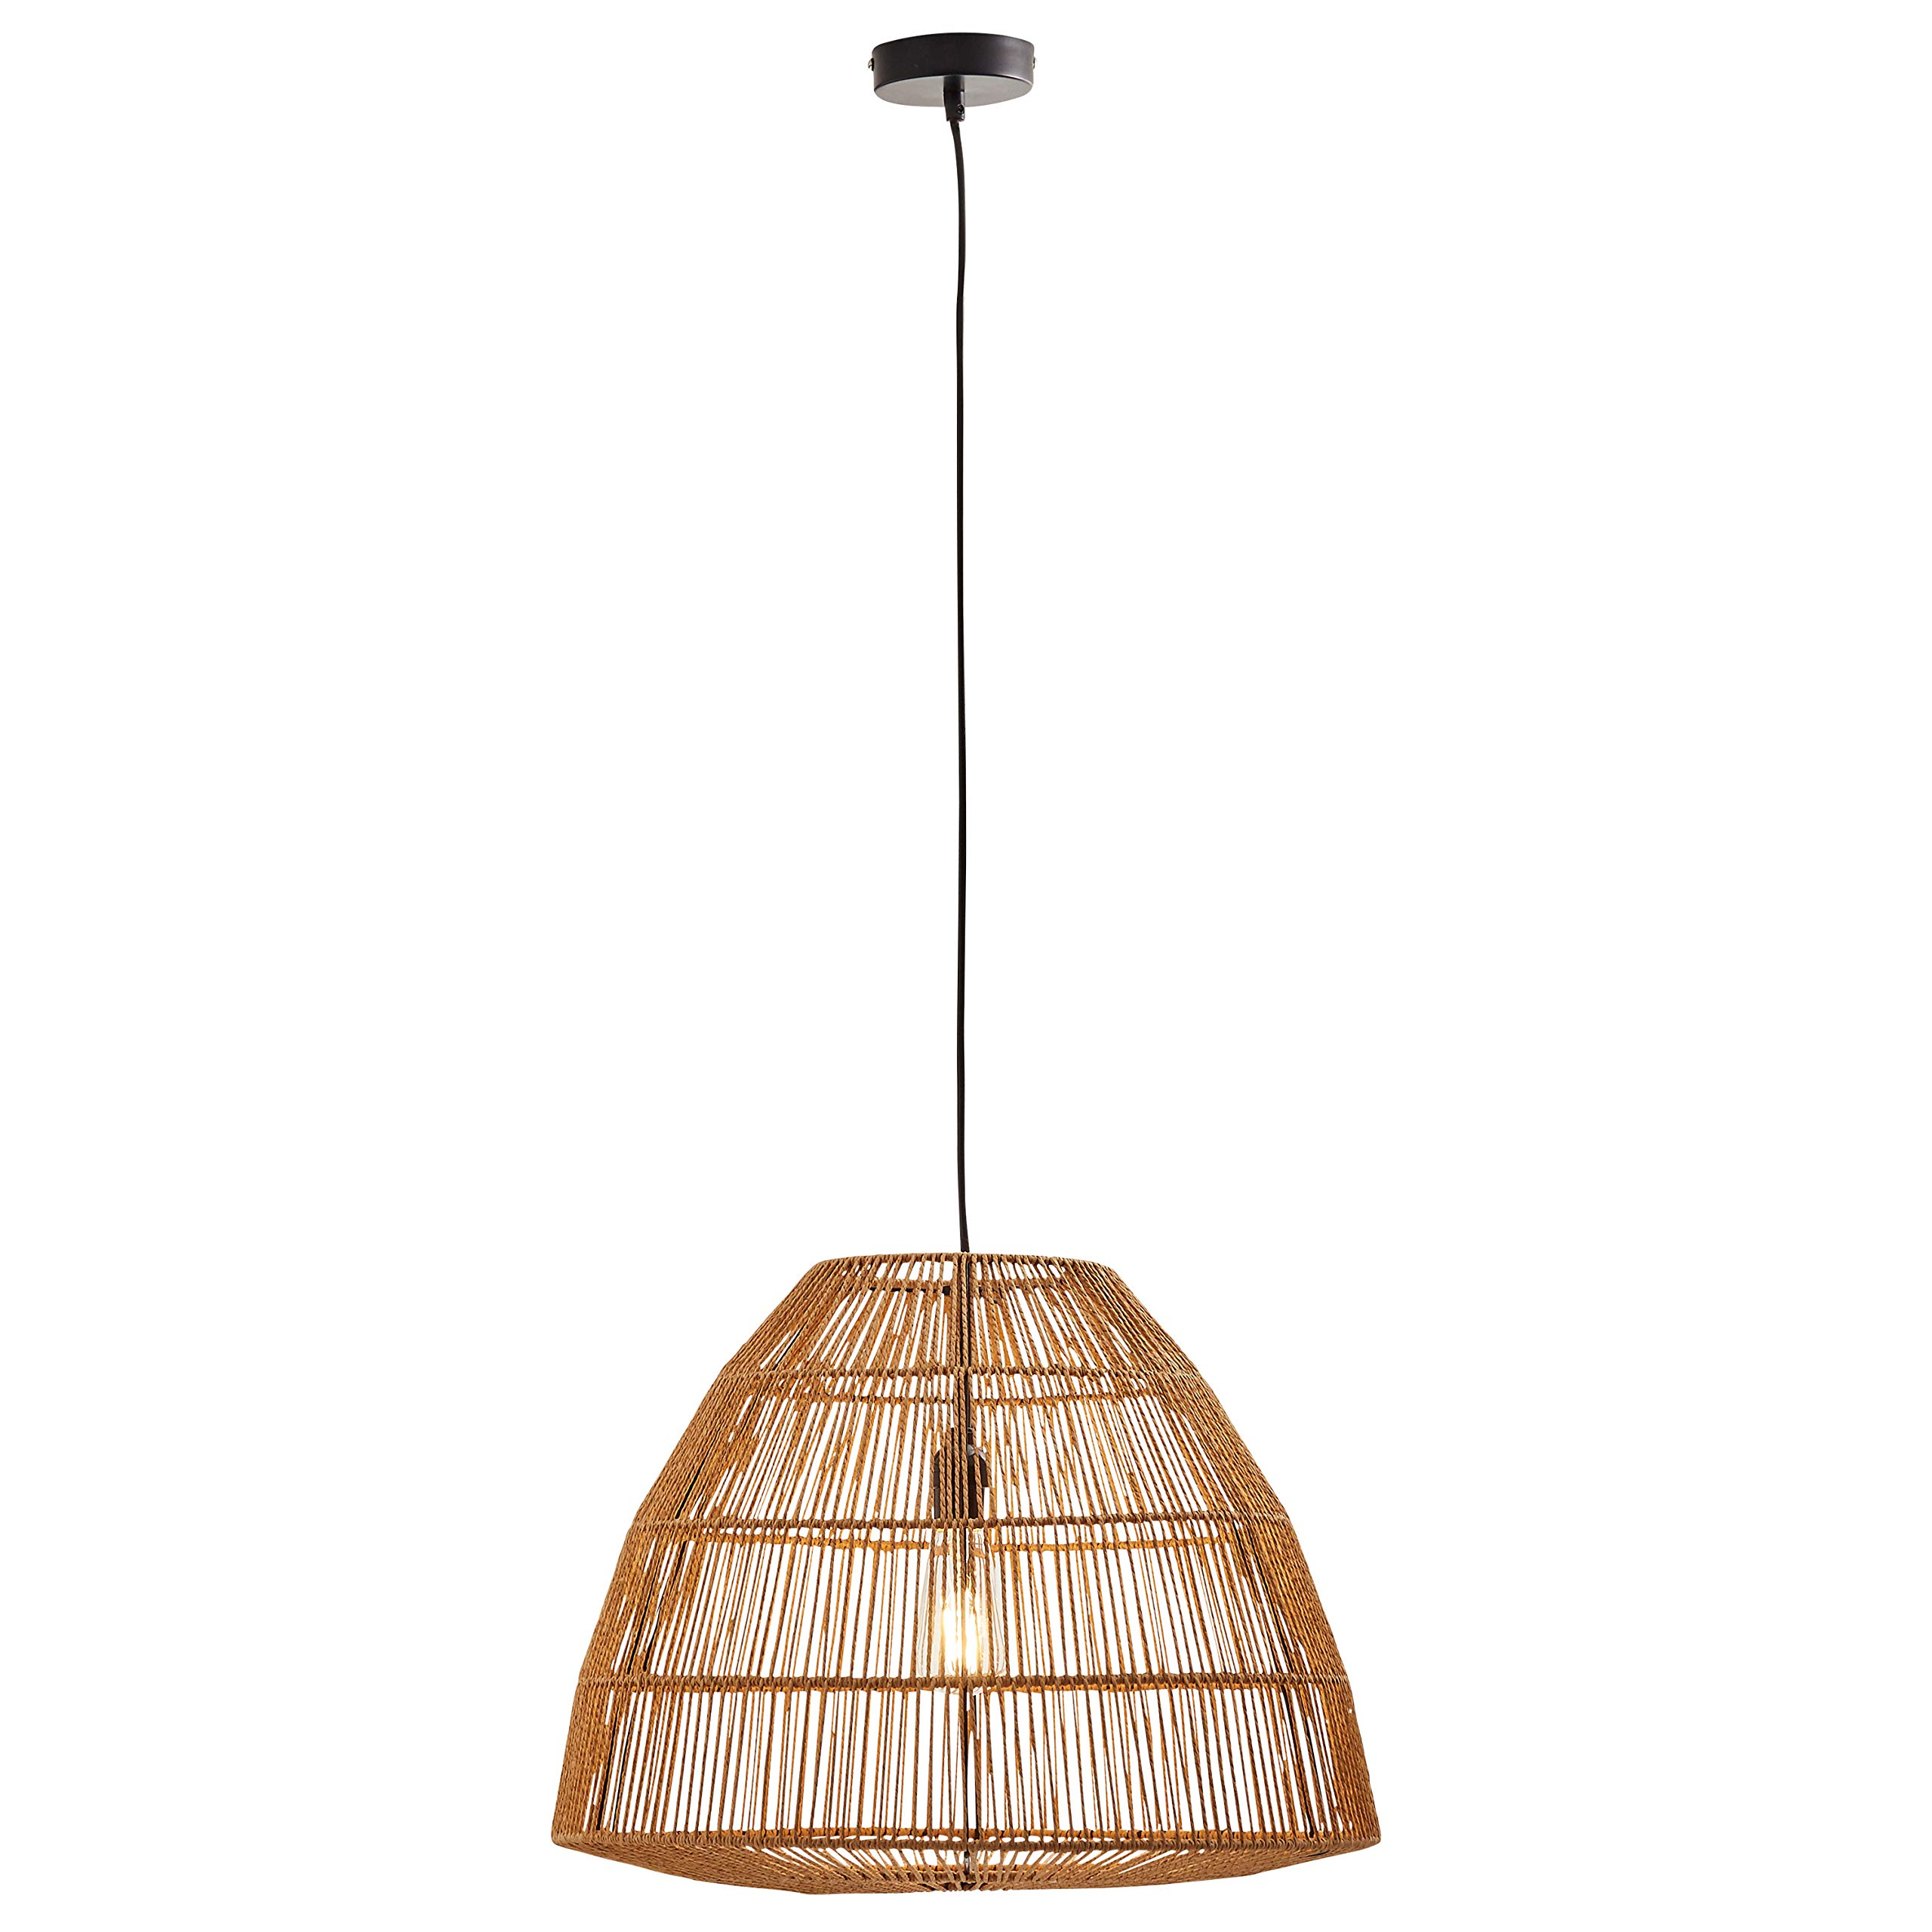 Stone & Beam Rustic Global Round Woven Pendant with Bulb, 44.5''H, Natural Rattan by Stone & Beam (Image #6)